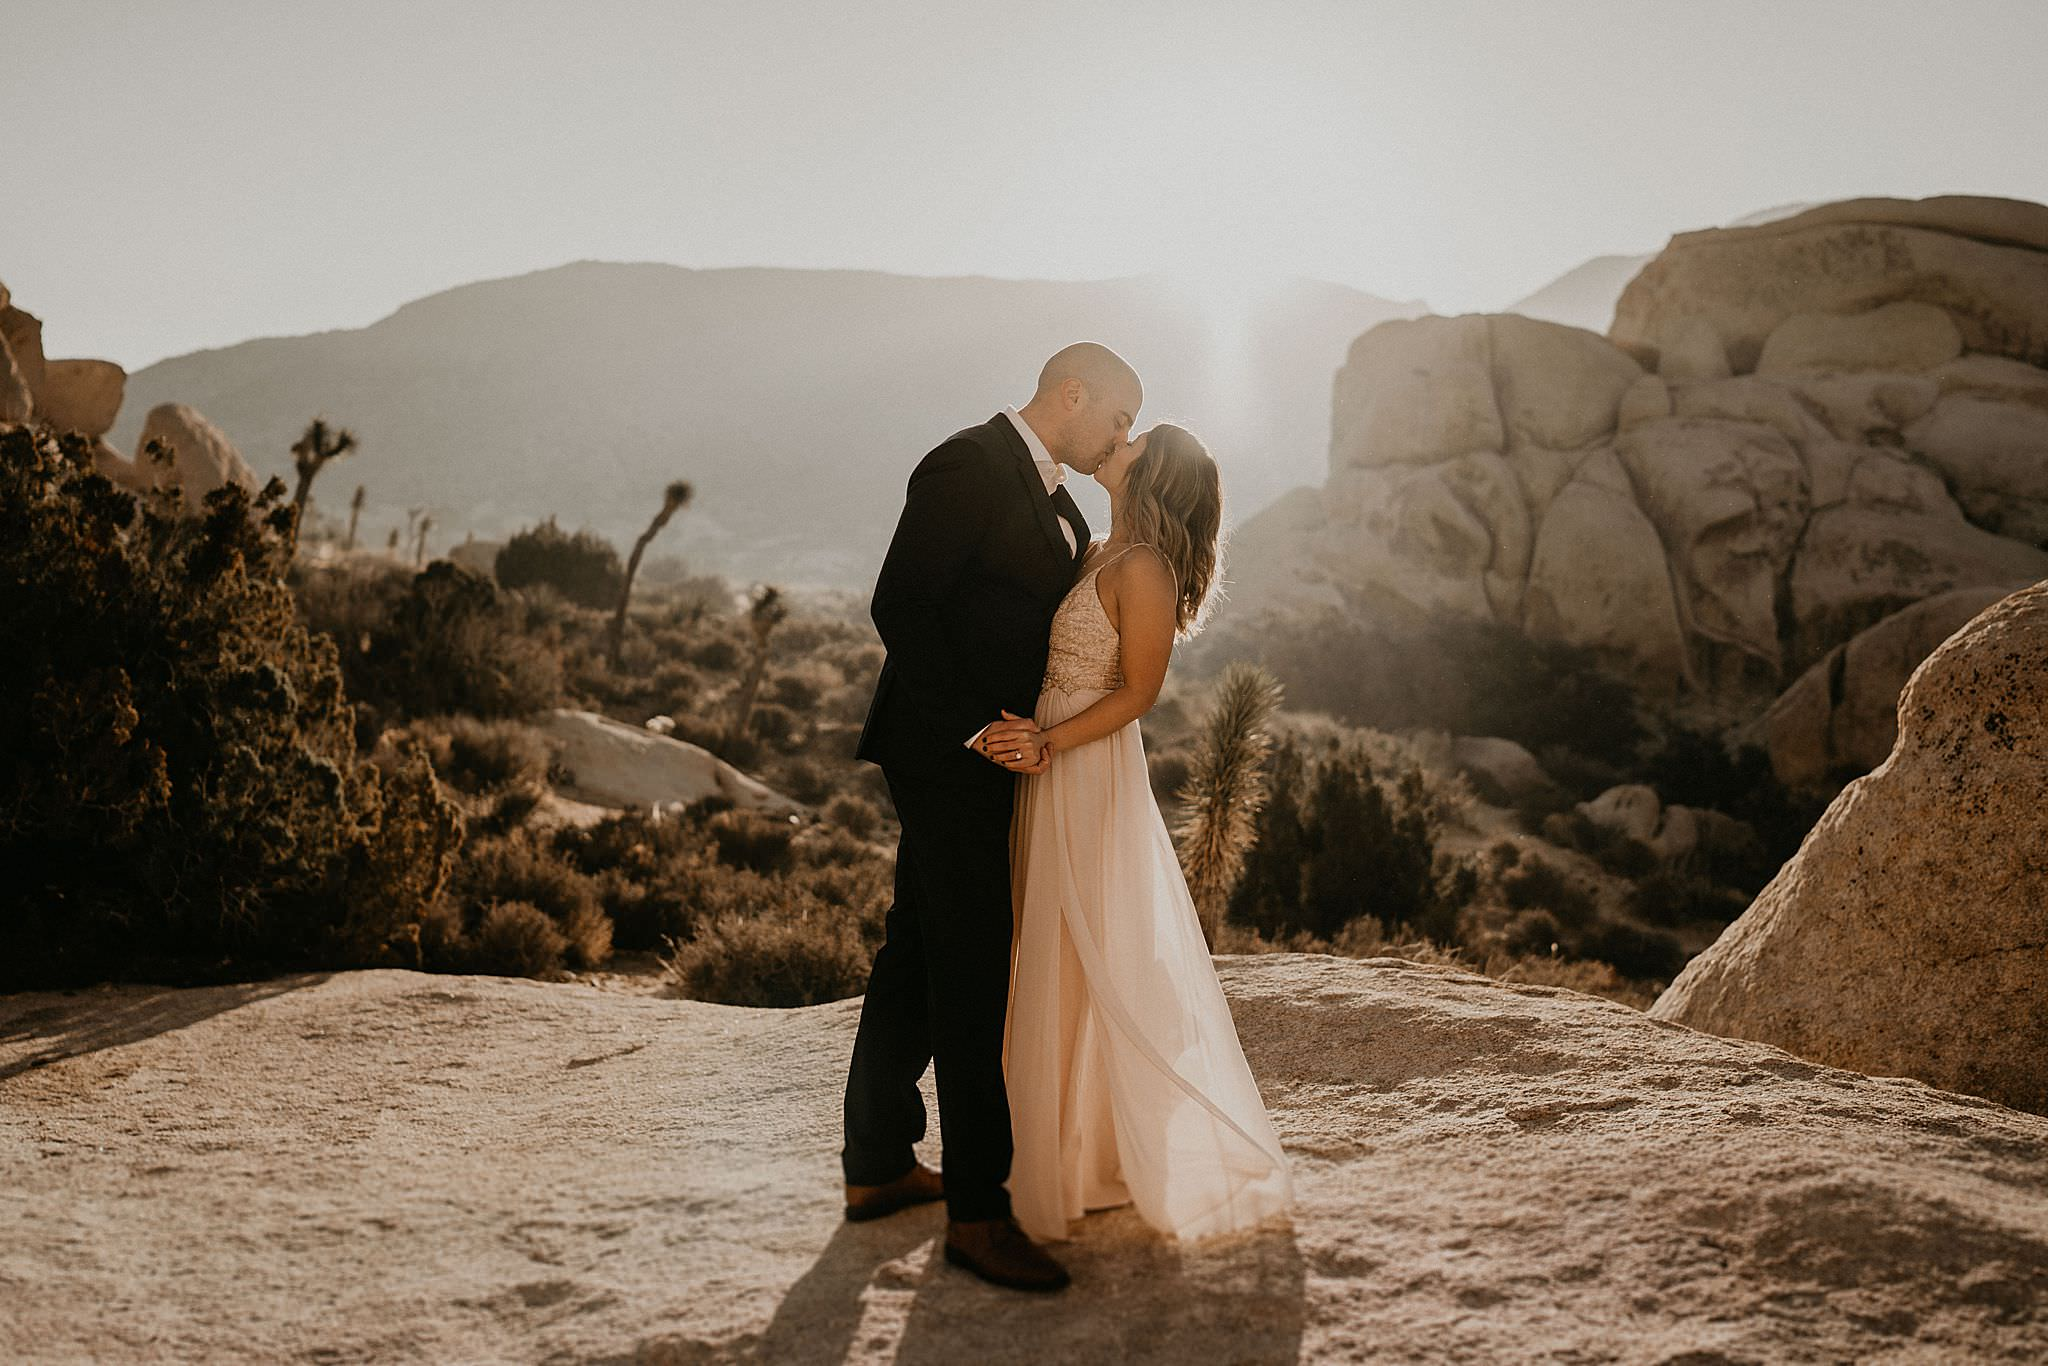 Southern California sun shining beautifully on bride and groom on their wedding day